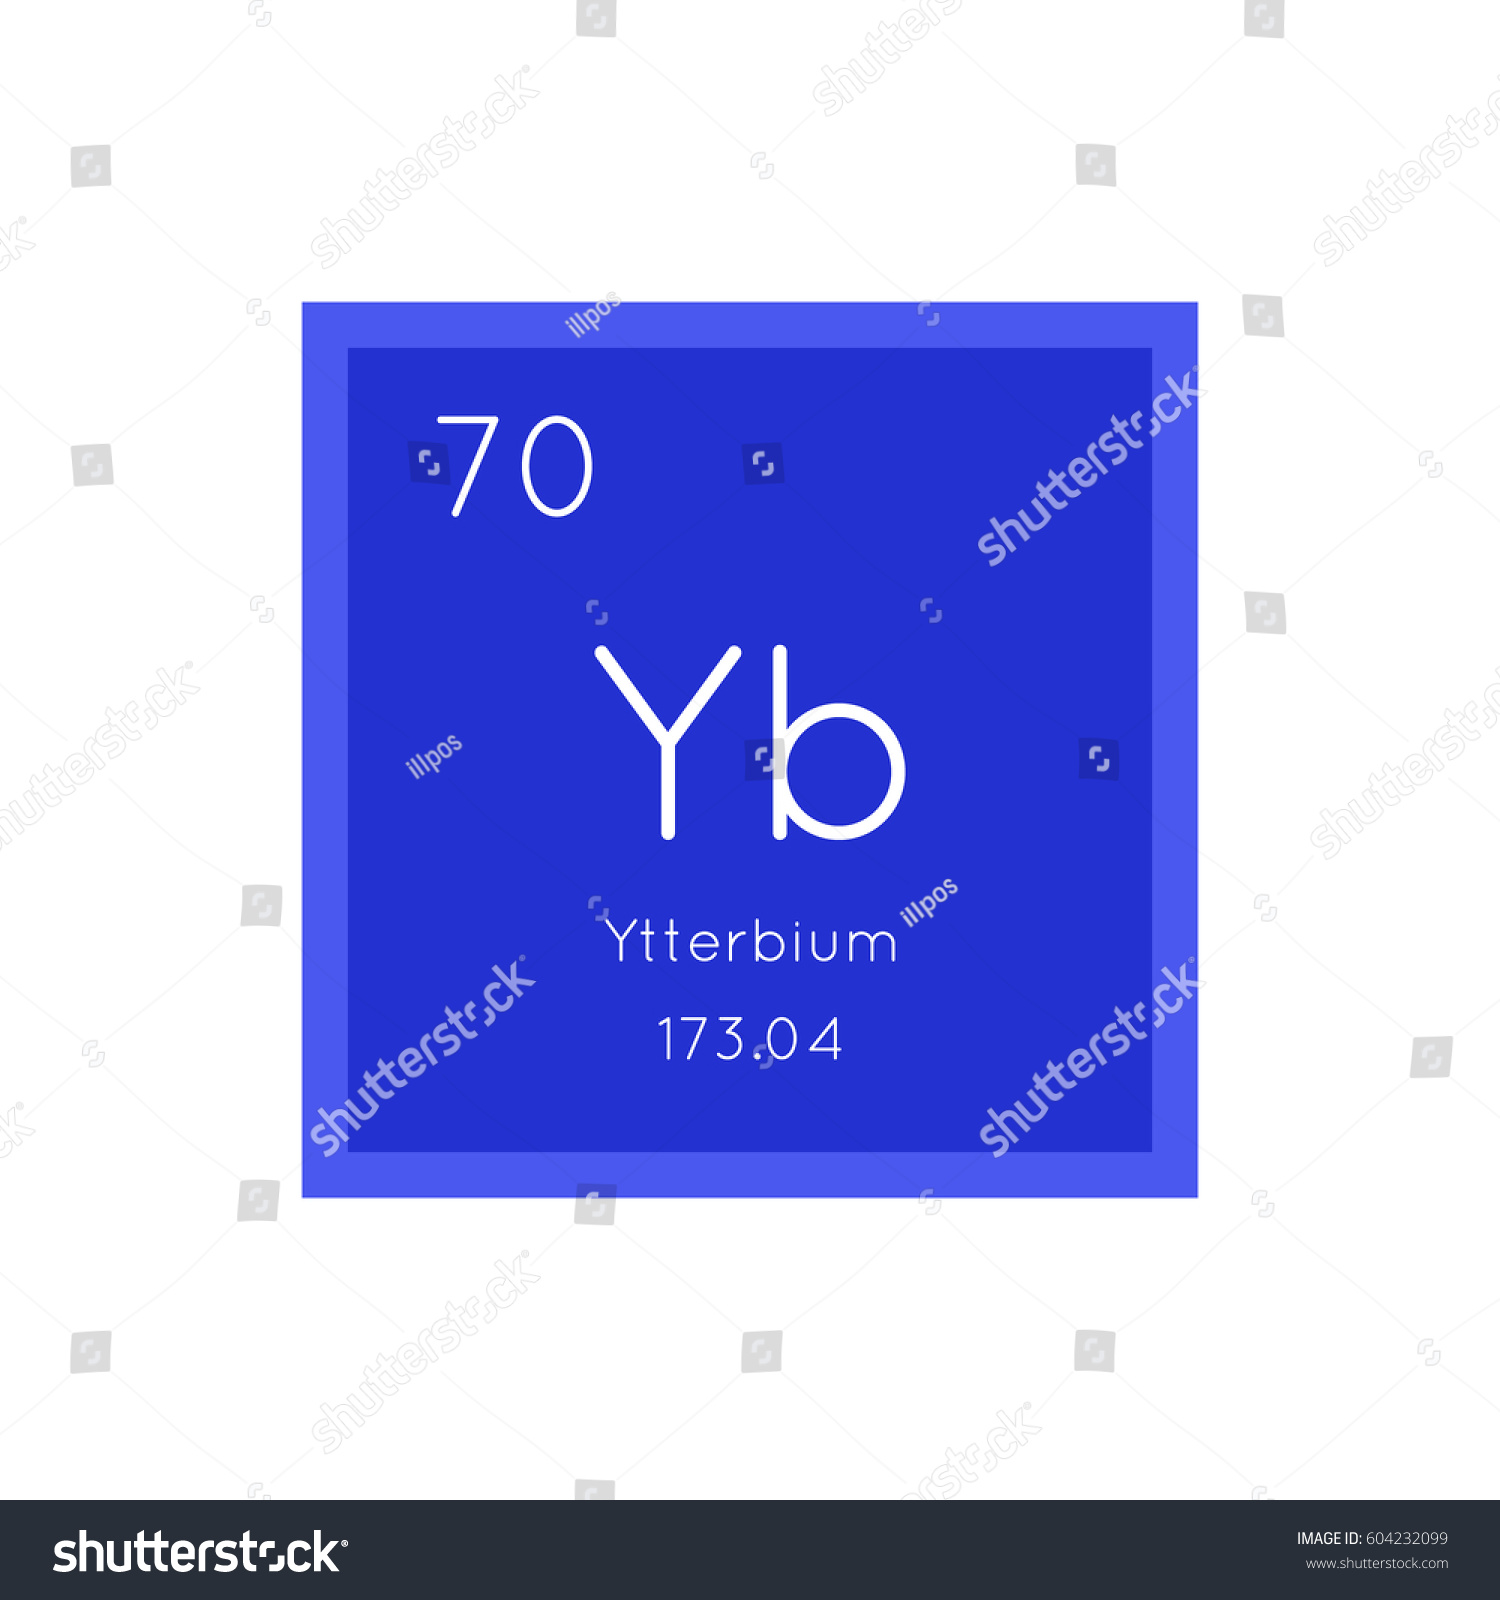 Ytterbium Simple Style Tile Icon Chemical Stock Vector 604232099